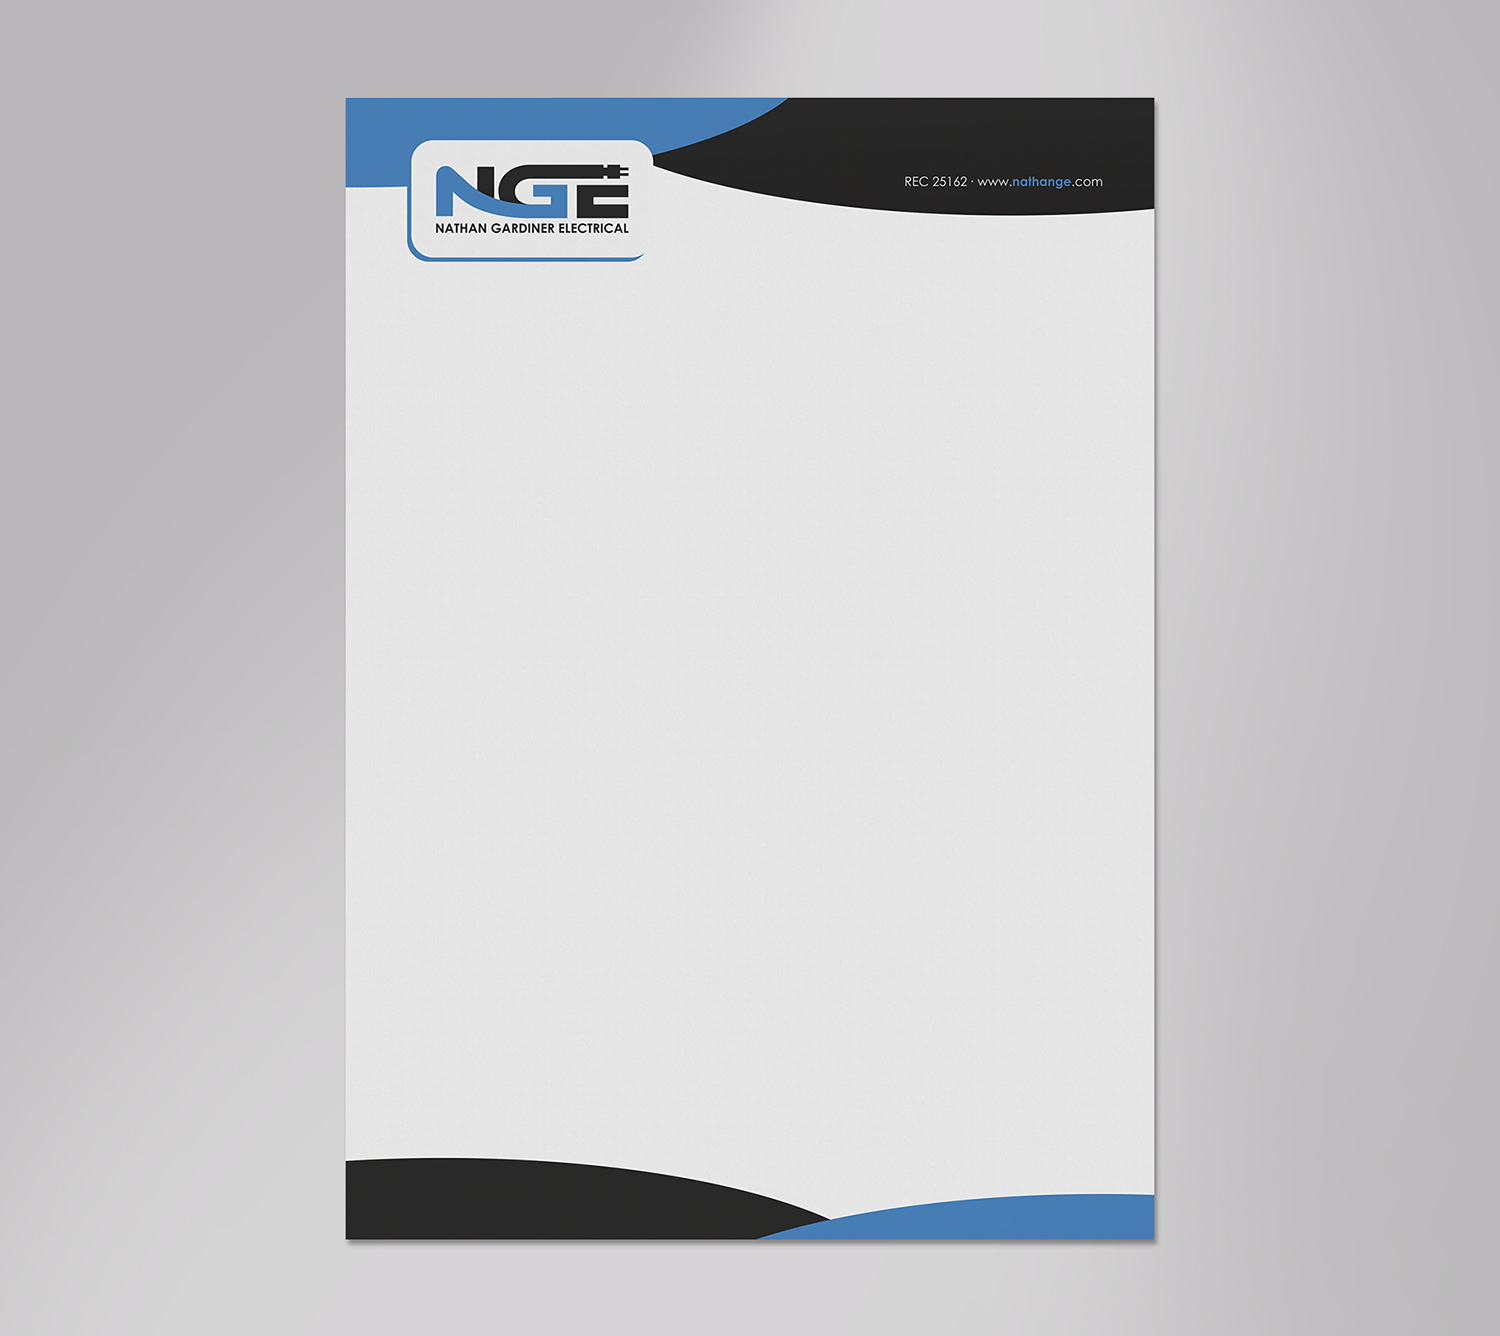 Letterhead Design By Logodentity For Nathan Gardiner Electrical